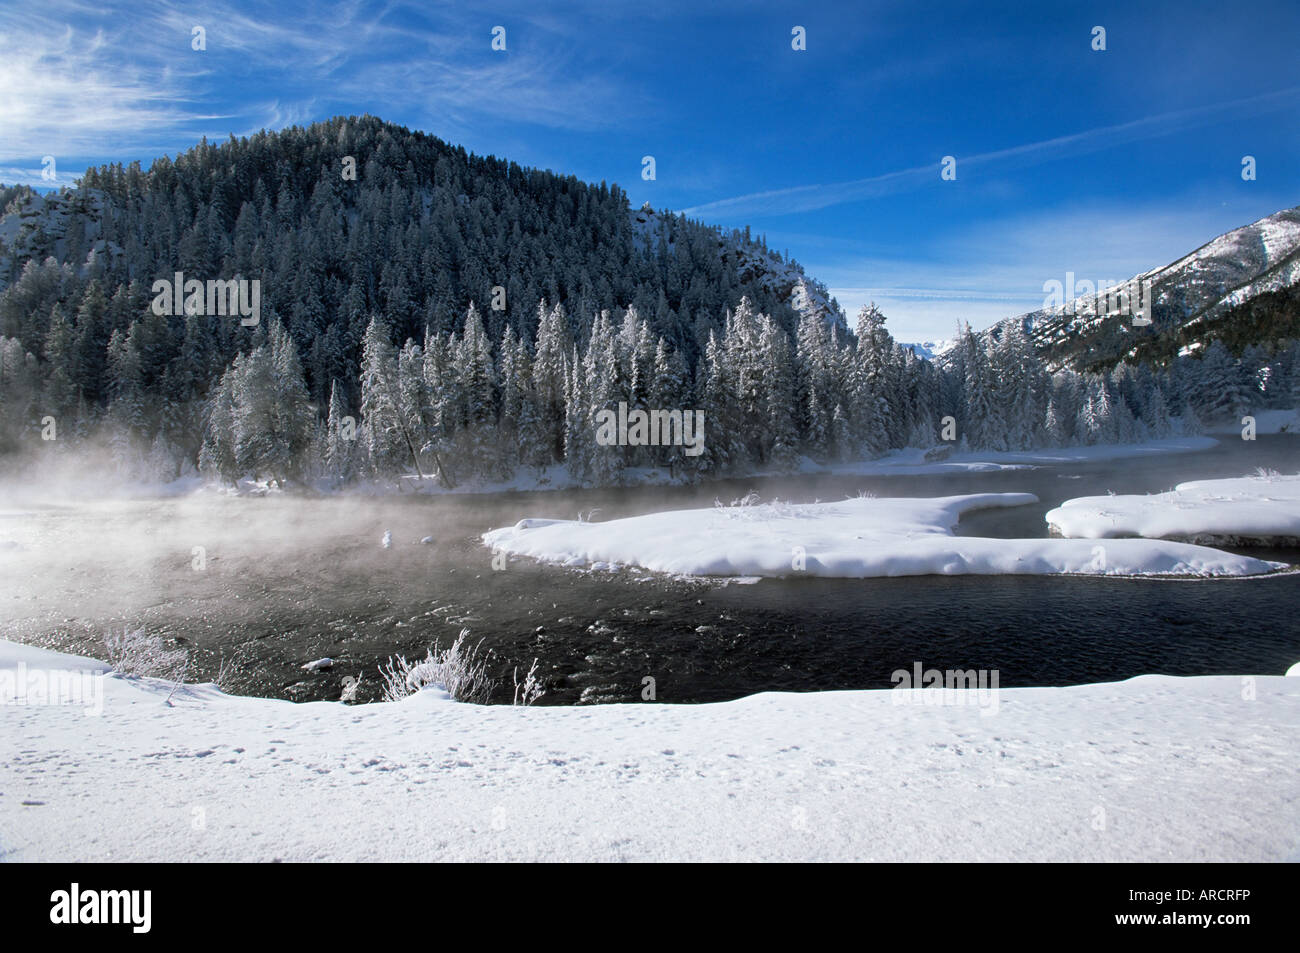 River in winter, Refuge Point, West Yellowstone, Montana, United States of America (U.S.A.), North America - Stock Image